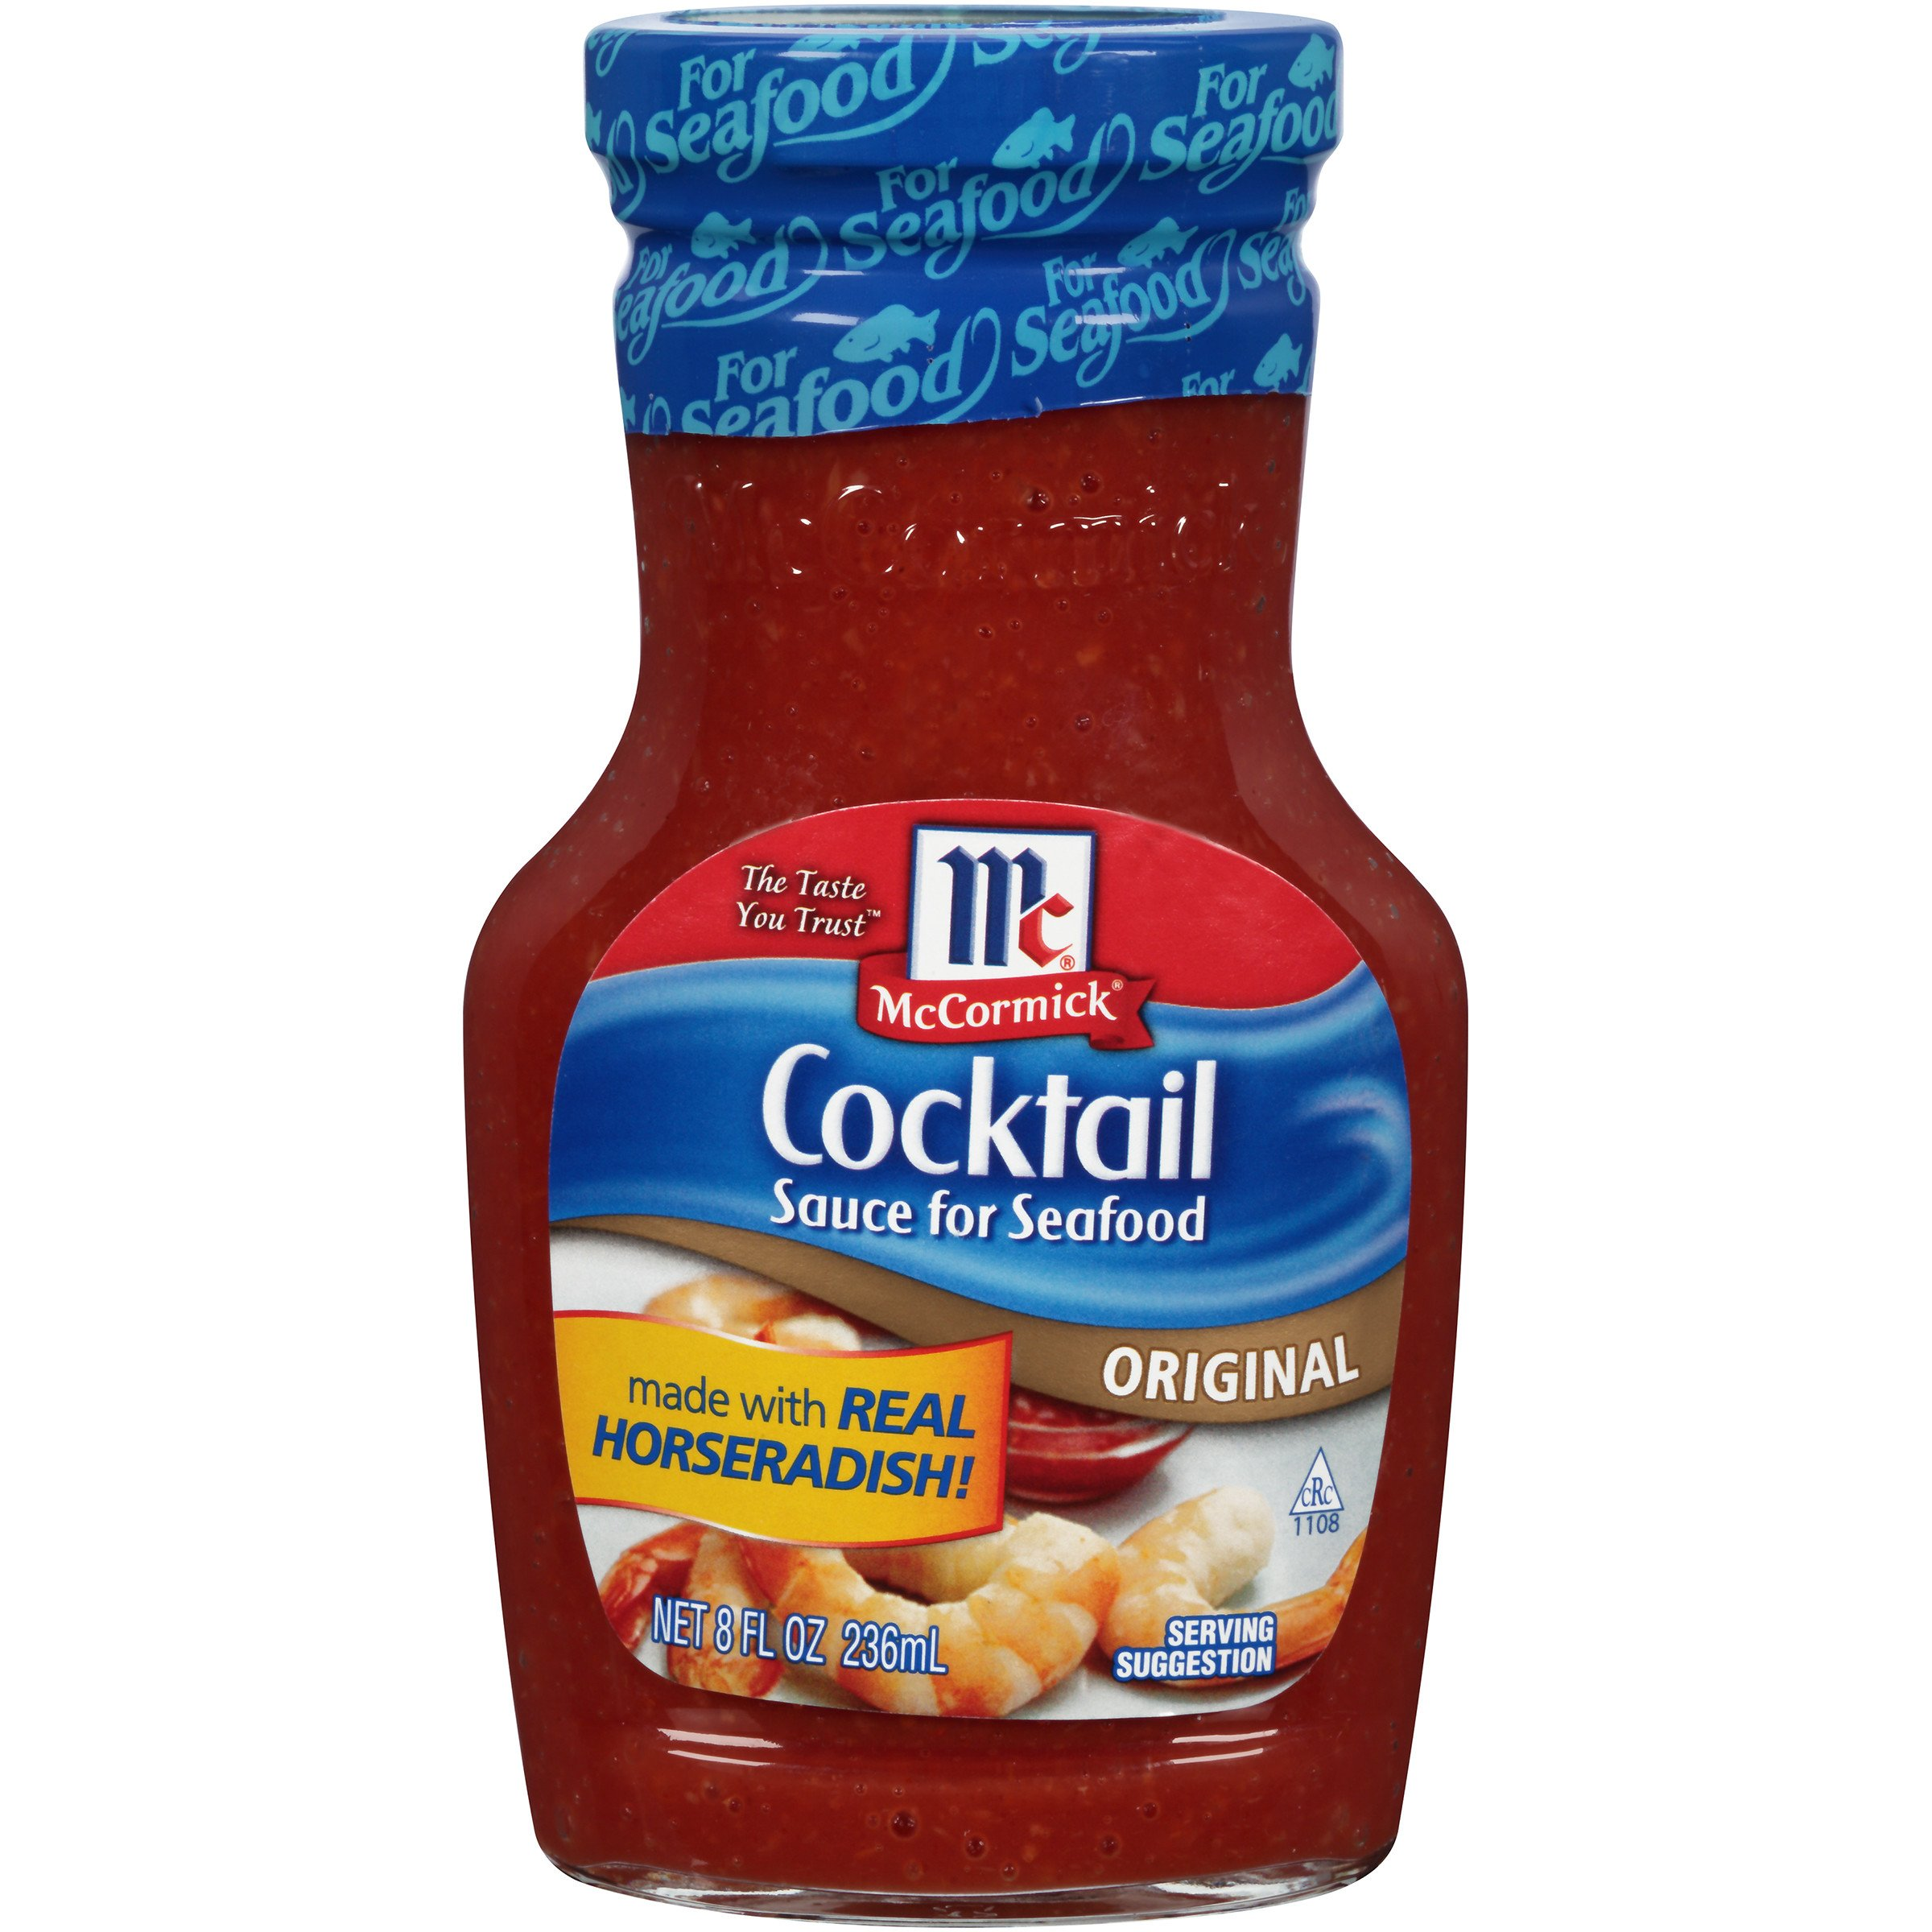 McCormick Golden Dipt Seafood Cocktail Sauce, 8 fl oz